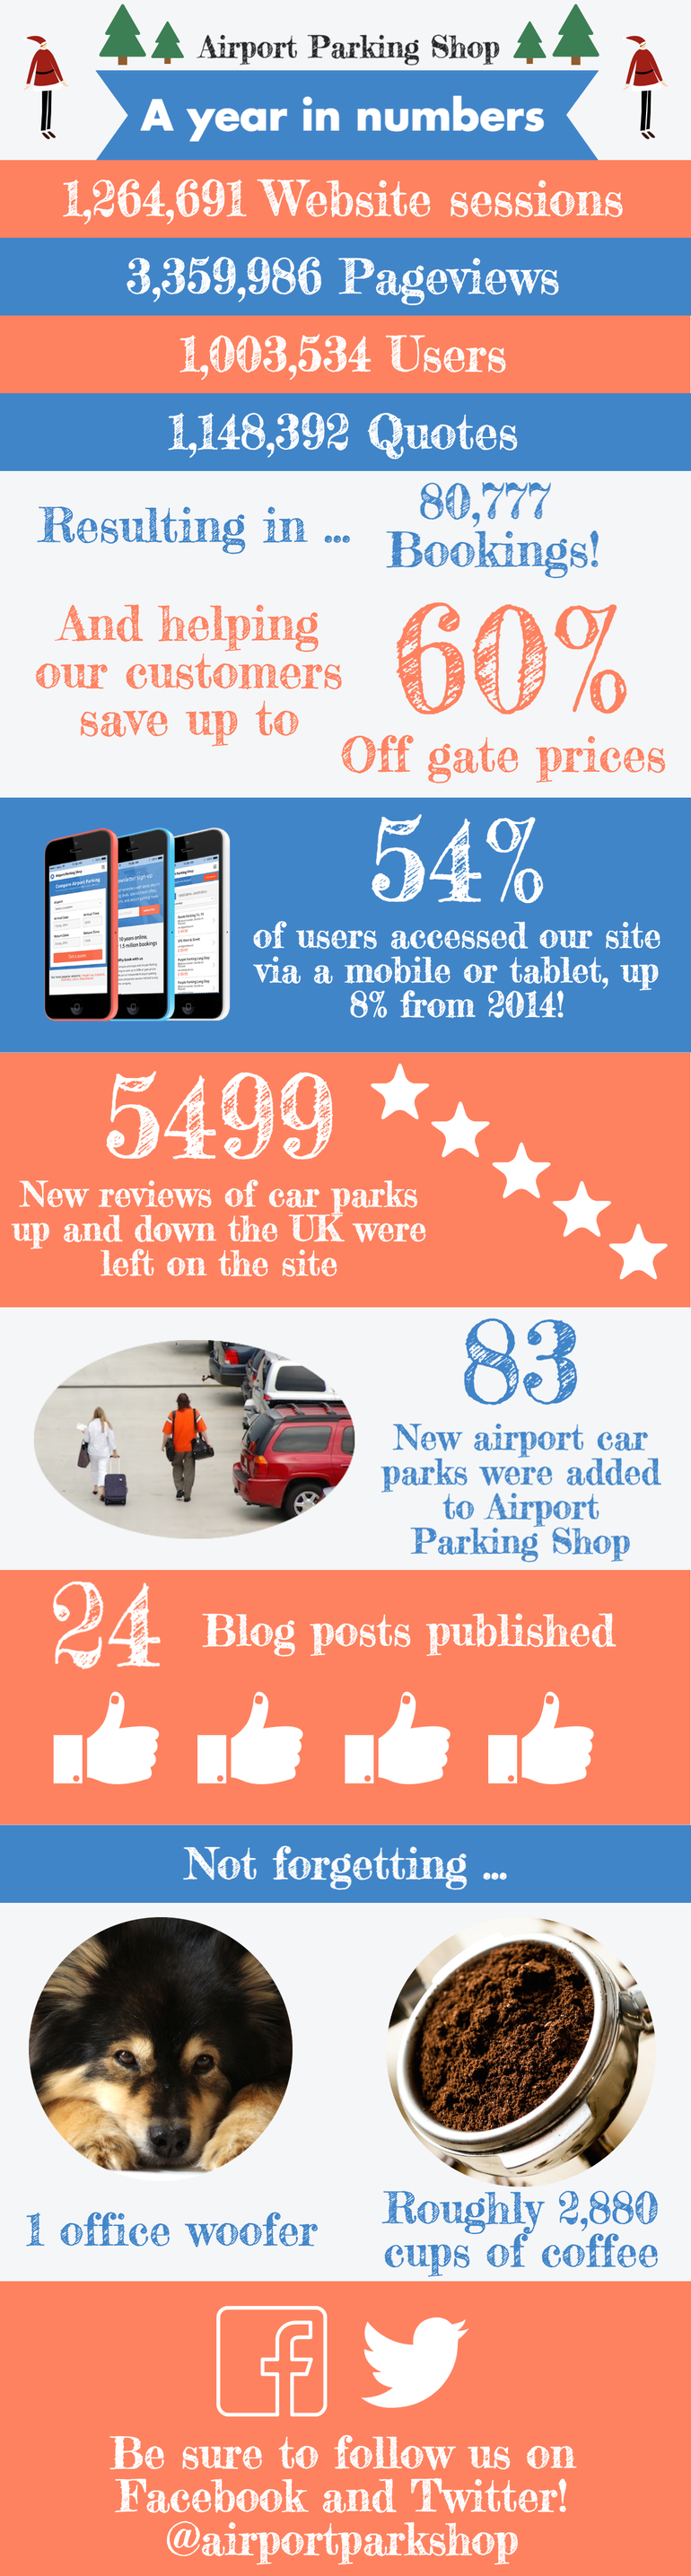 A look back at our year in numbers